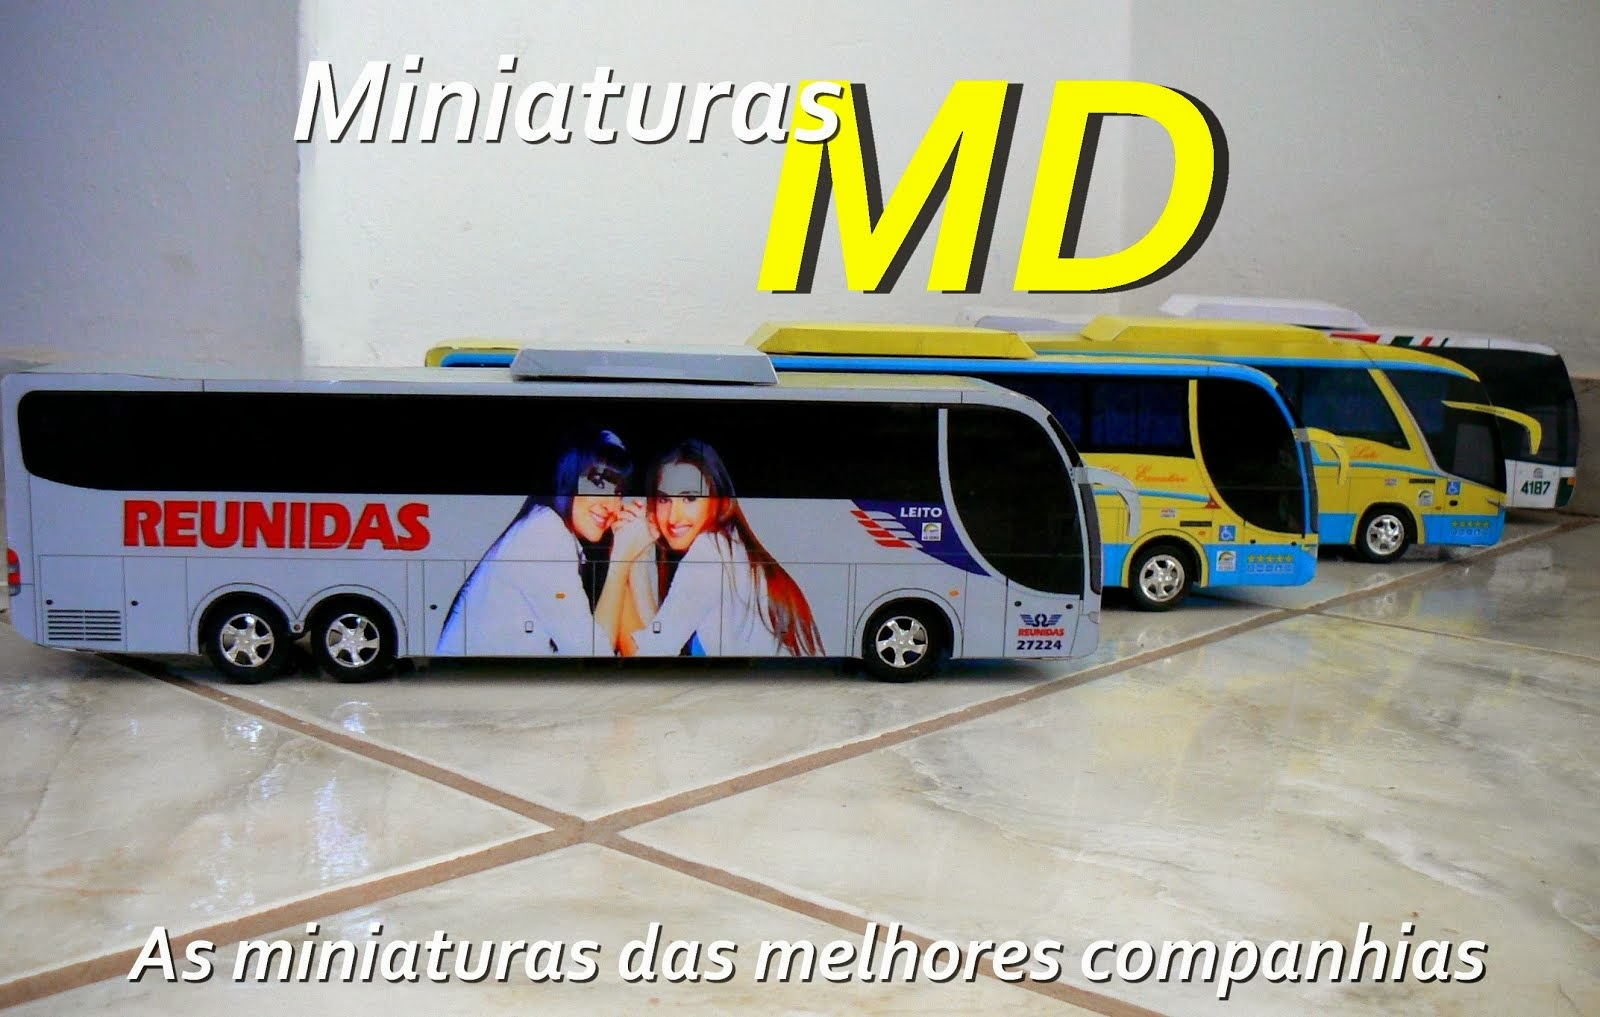 Miniaturas MD